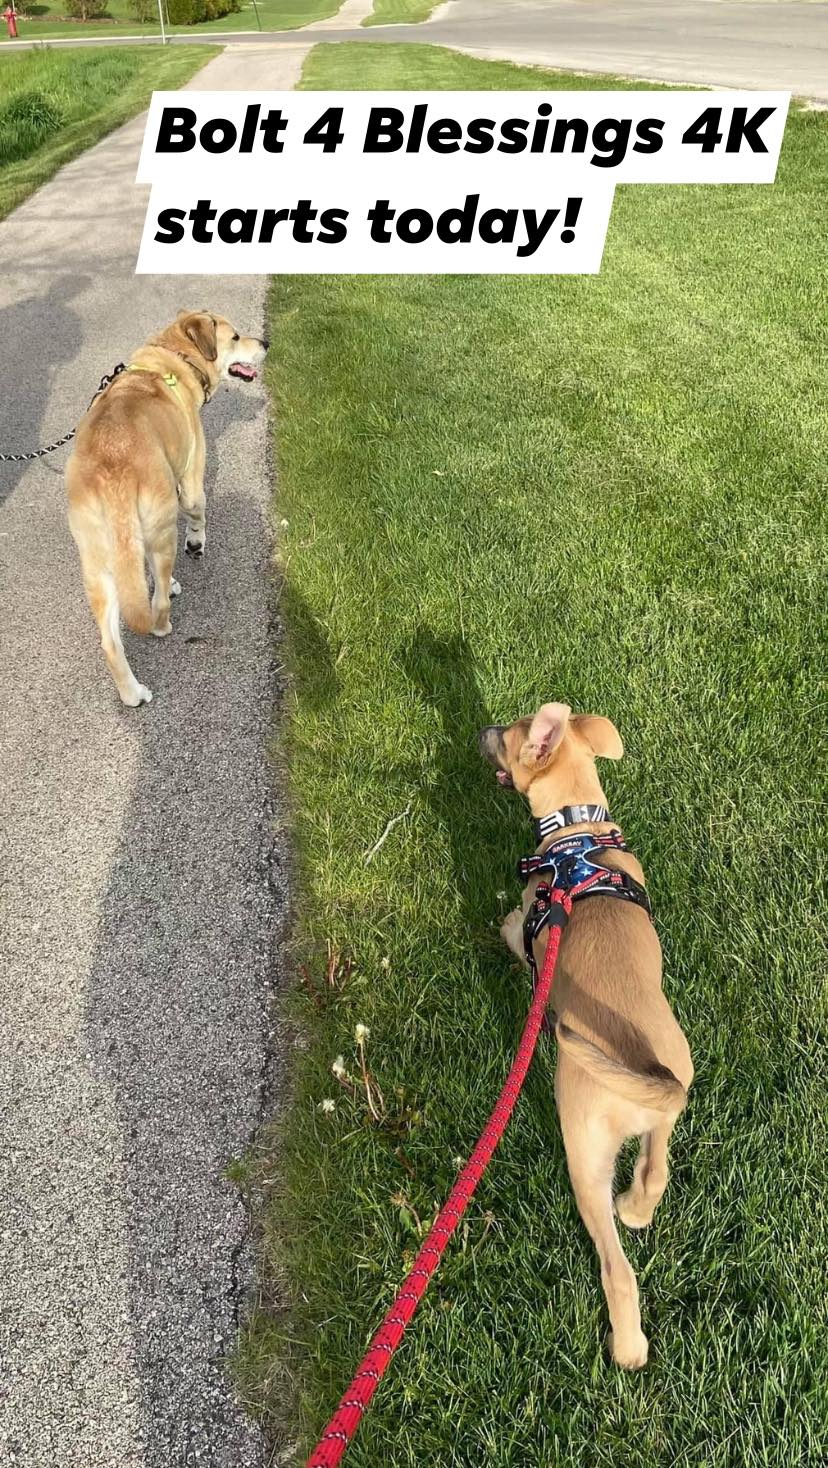 Dogs participating in Bolt 4 Blessings